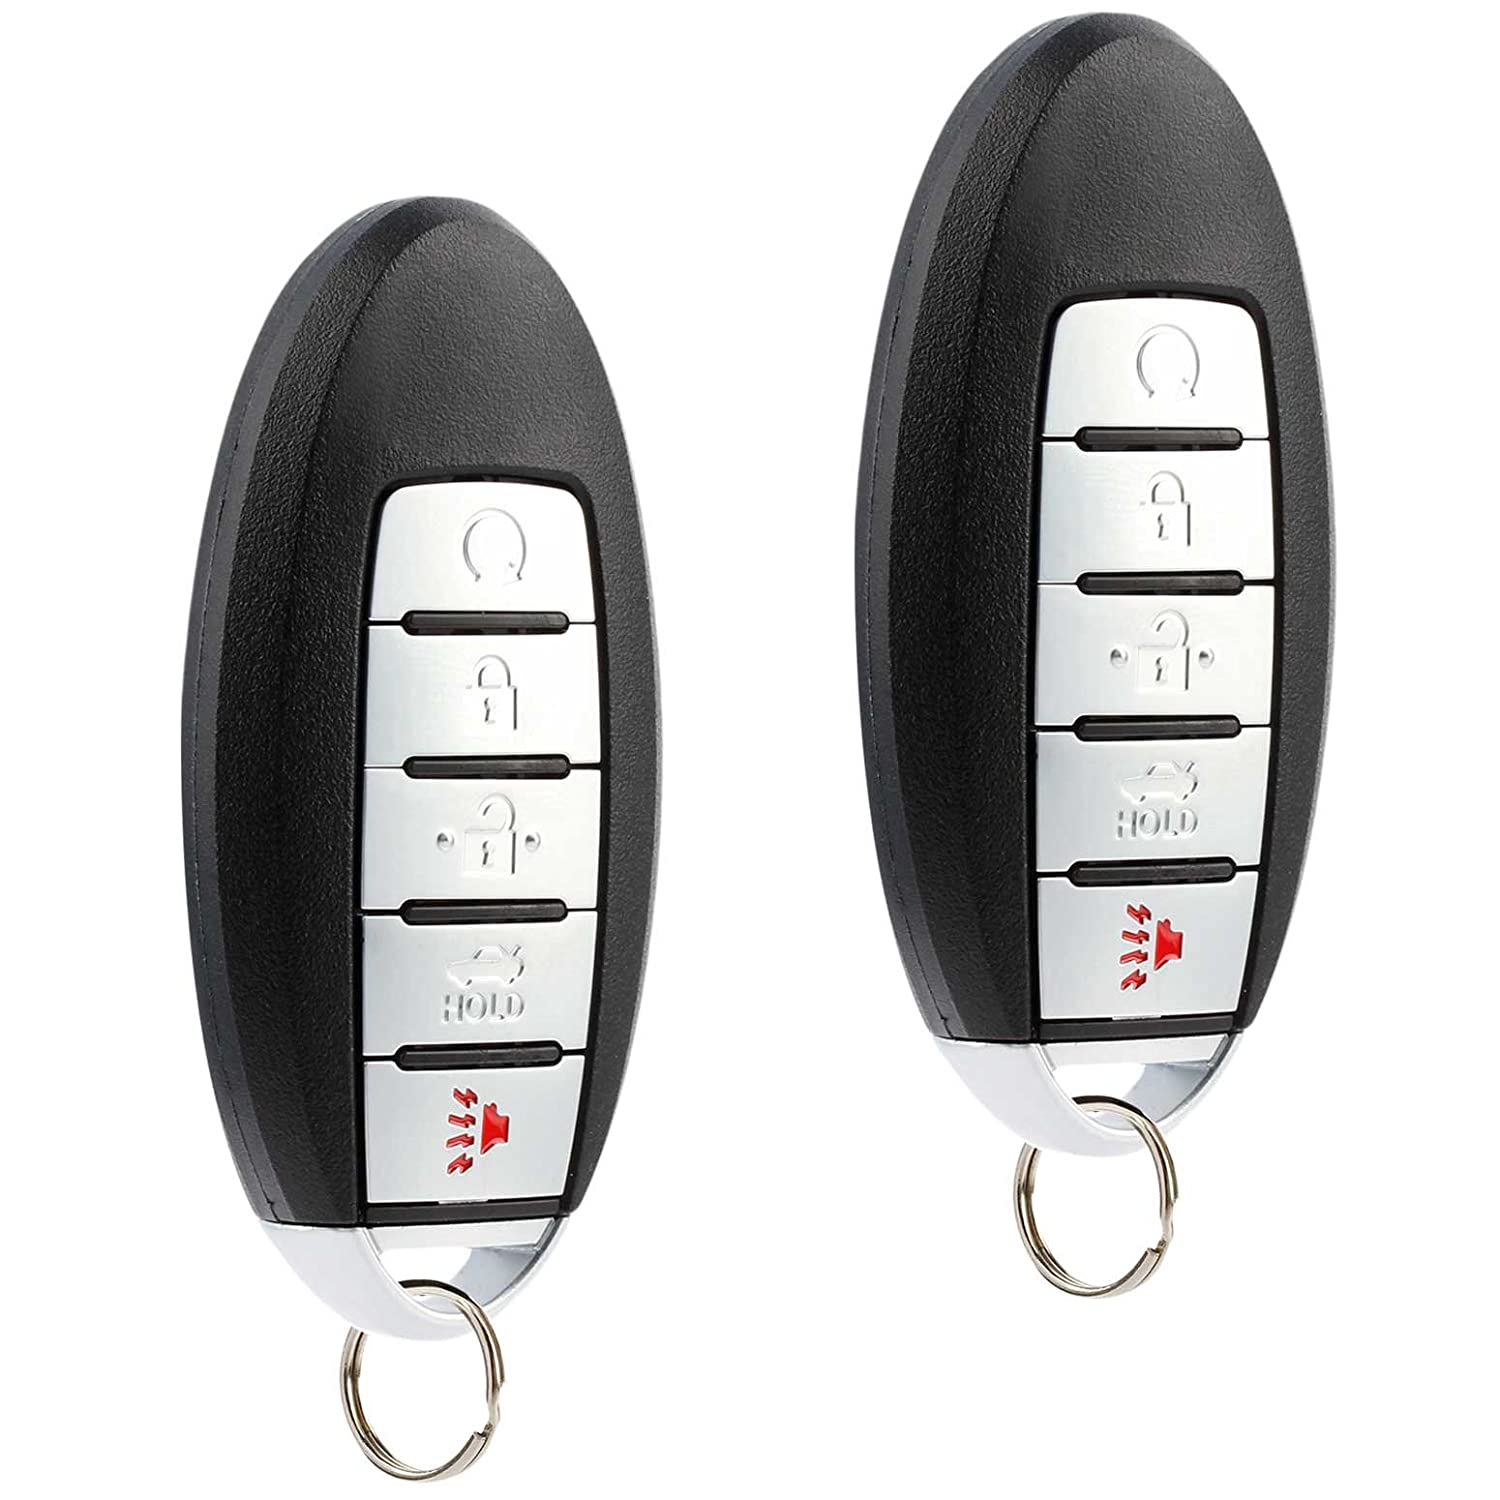 2 For 2013 2014 2015 Nissan Altima Remote Car Keyless Entry Key Fob S180144014